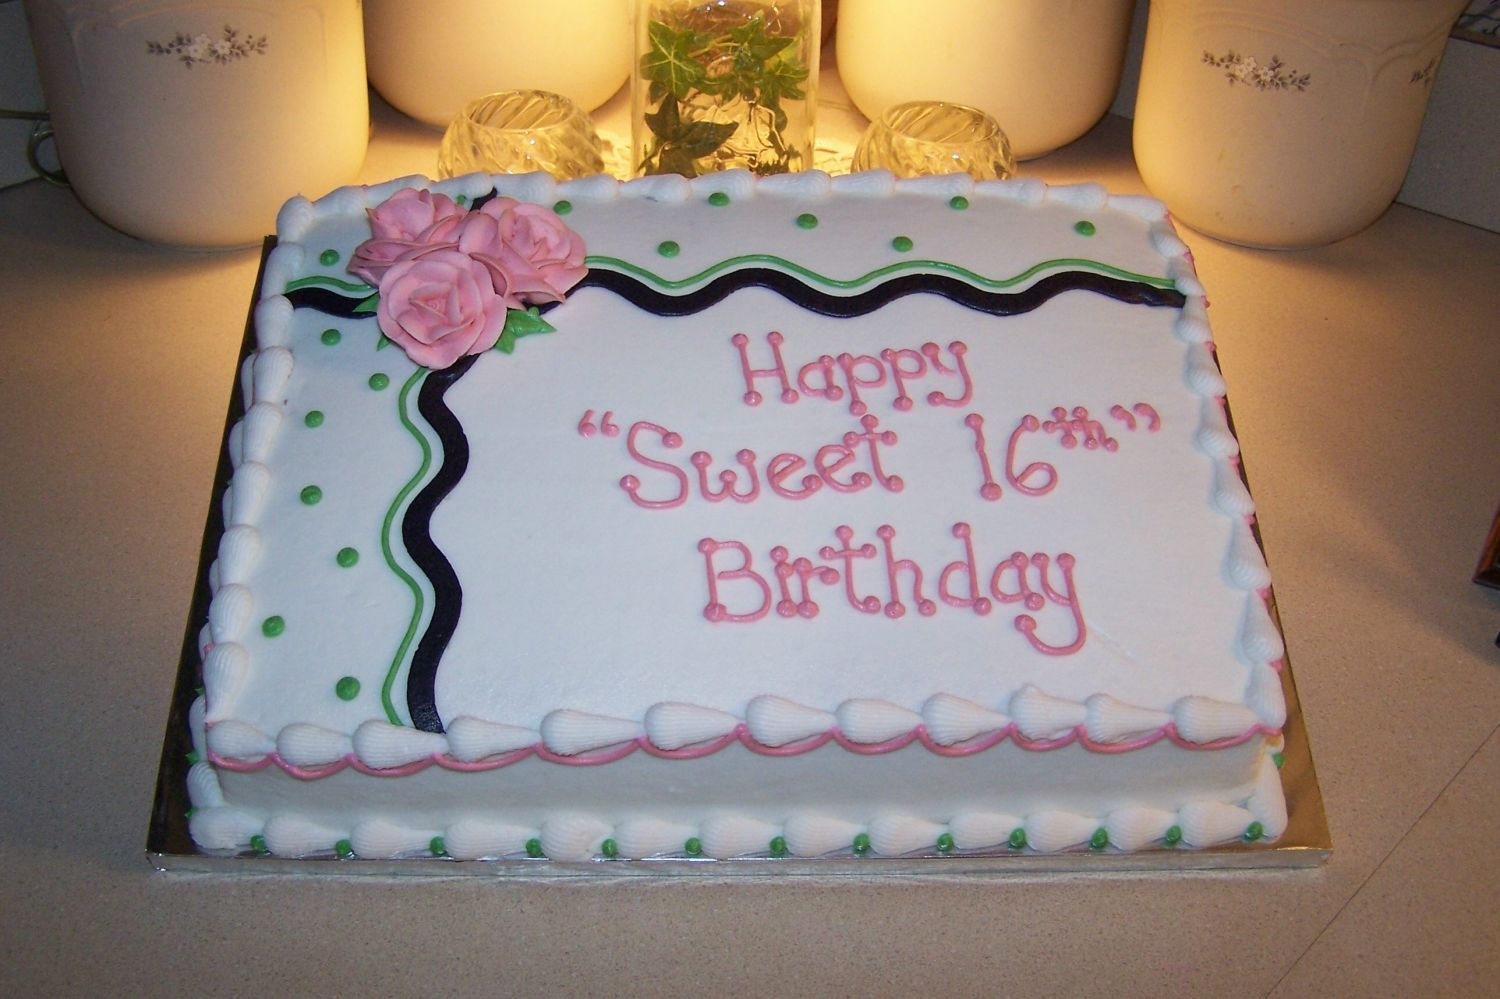 Sheet Cake Designs Could Be Created For Any Occasions Such